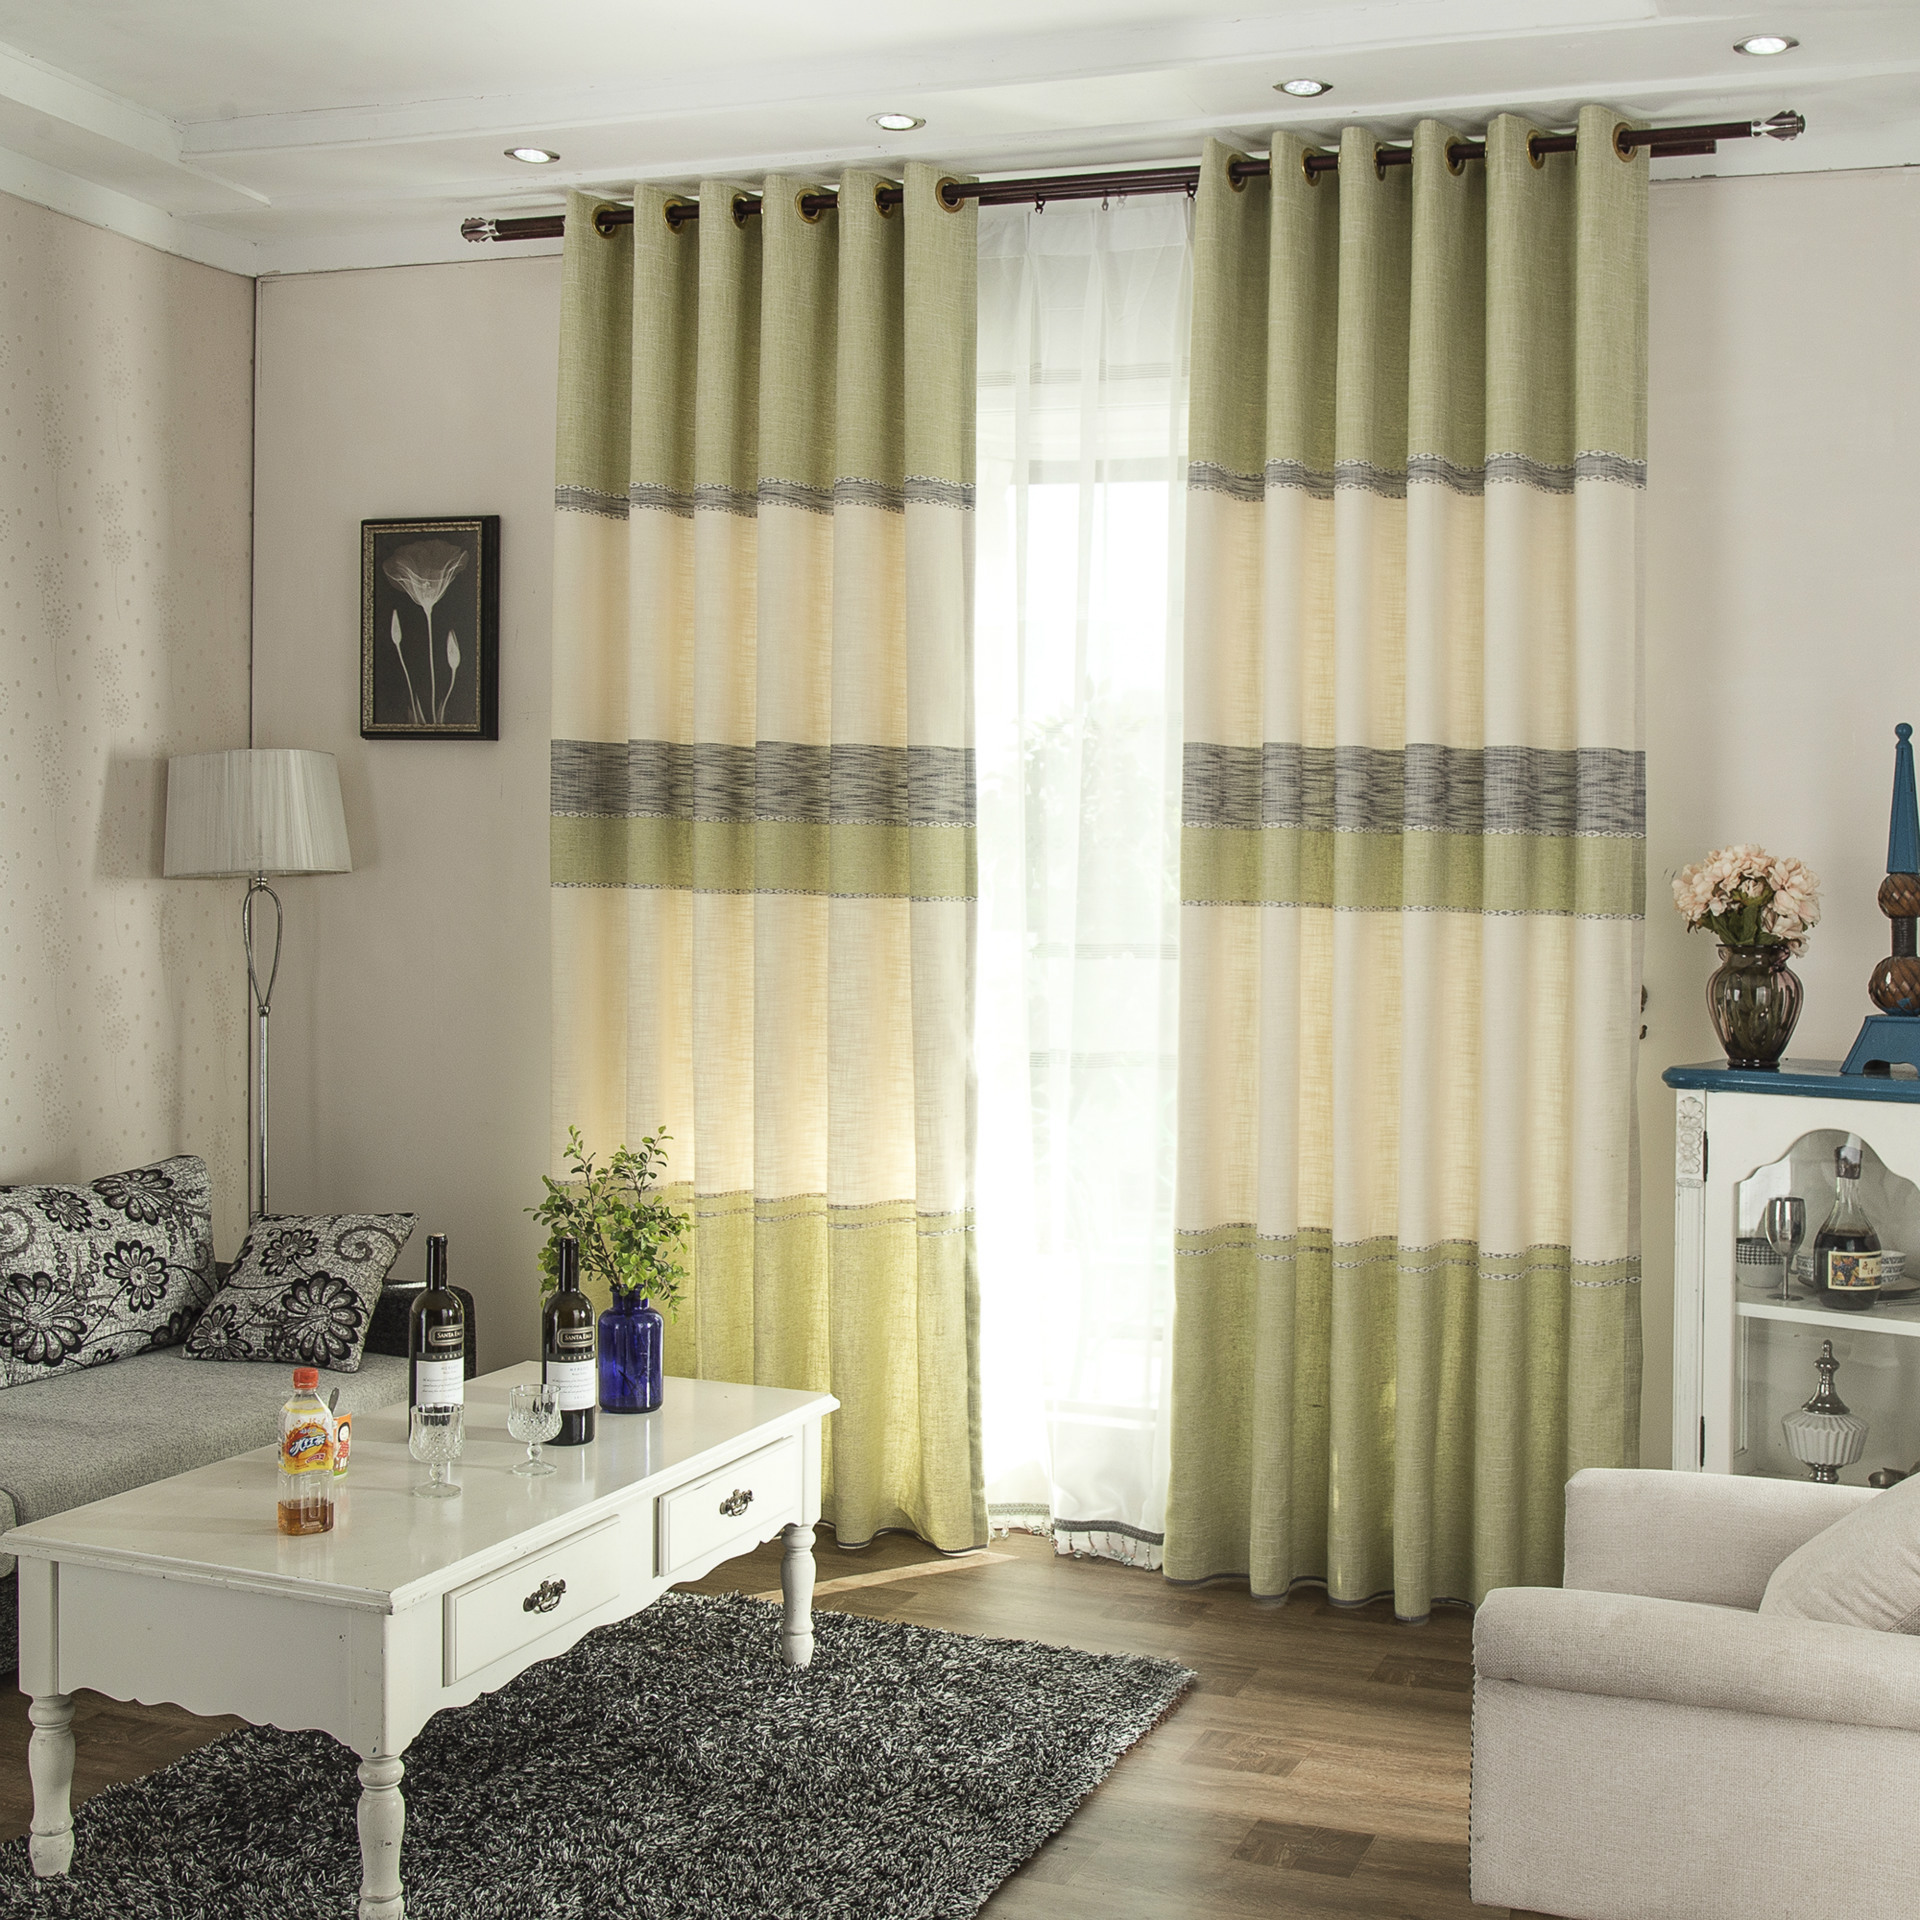 Curtains for bedroom 2016 - Aliexpress Com Buy Curtains For Bedroom 2016 New Curtains Modern Minimalist Small Fresh Style Bedroom Curtains Special Offer Wholesale Products From